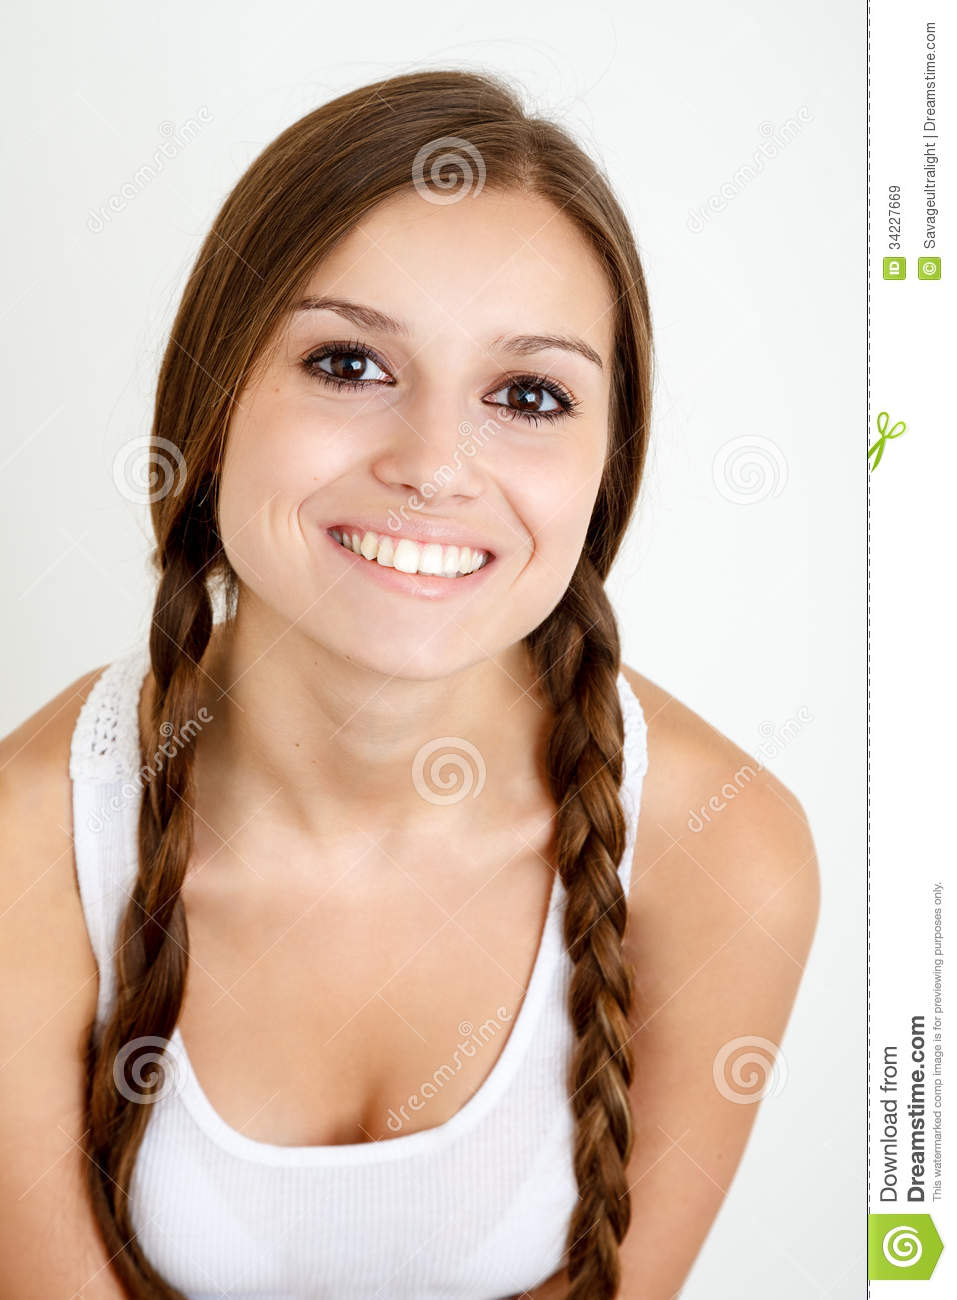 Smiling Girl With Braids Royalty Free Stock Images Image